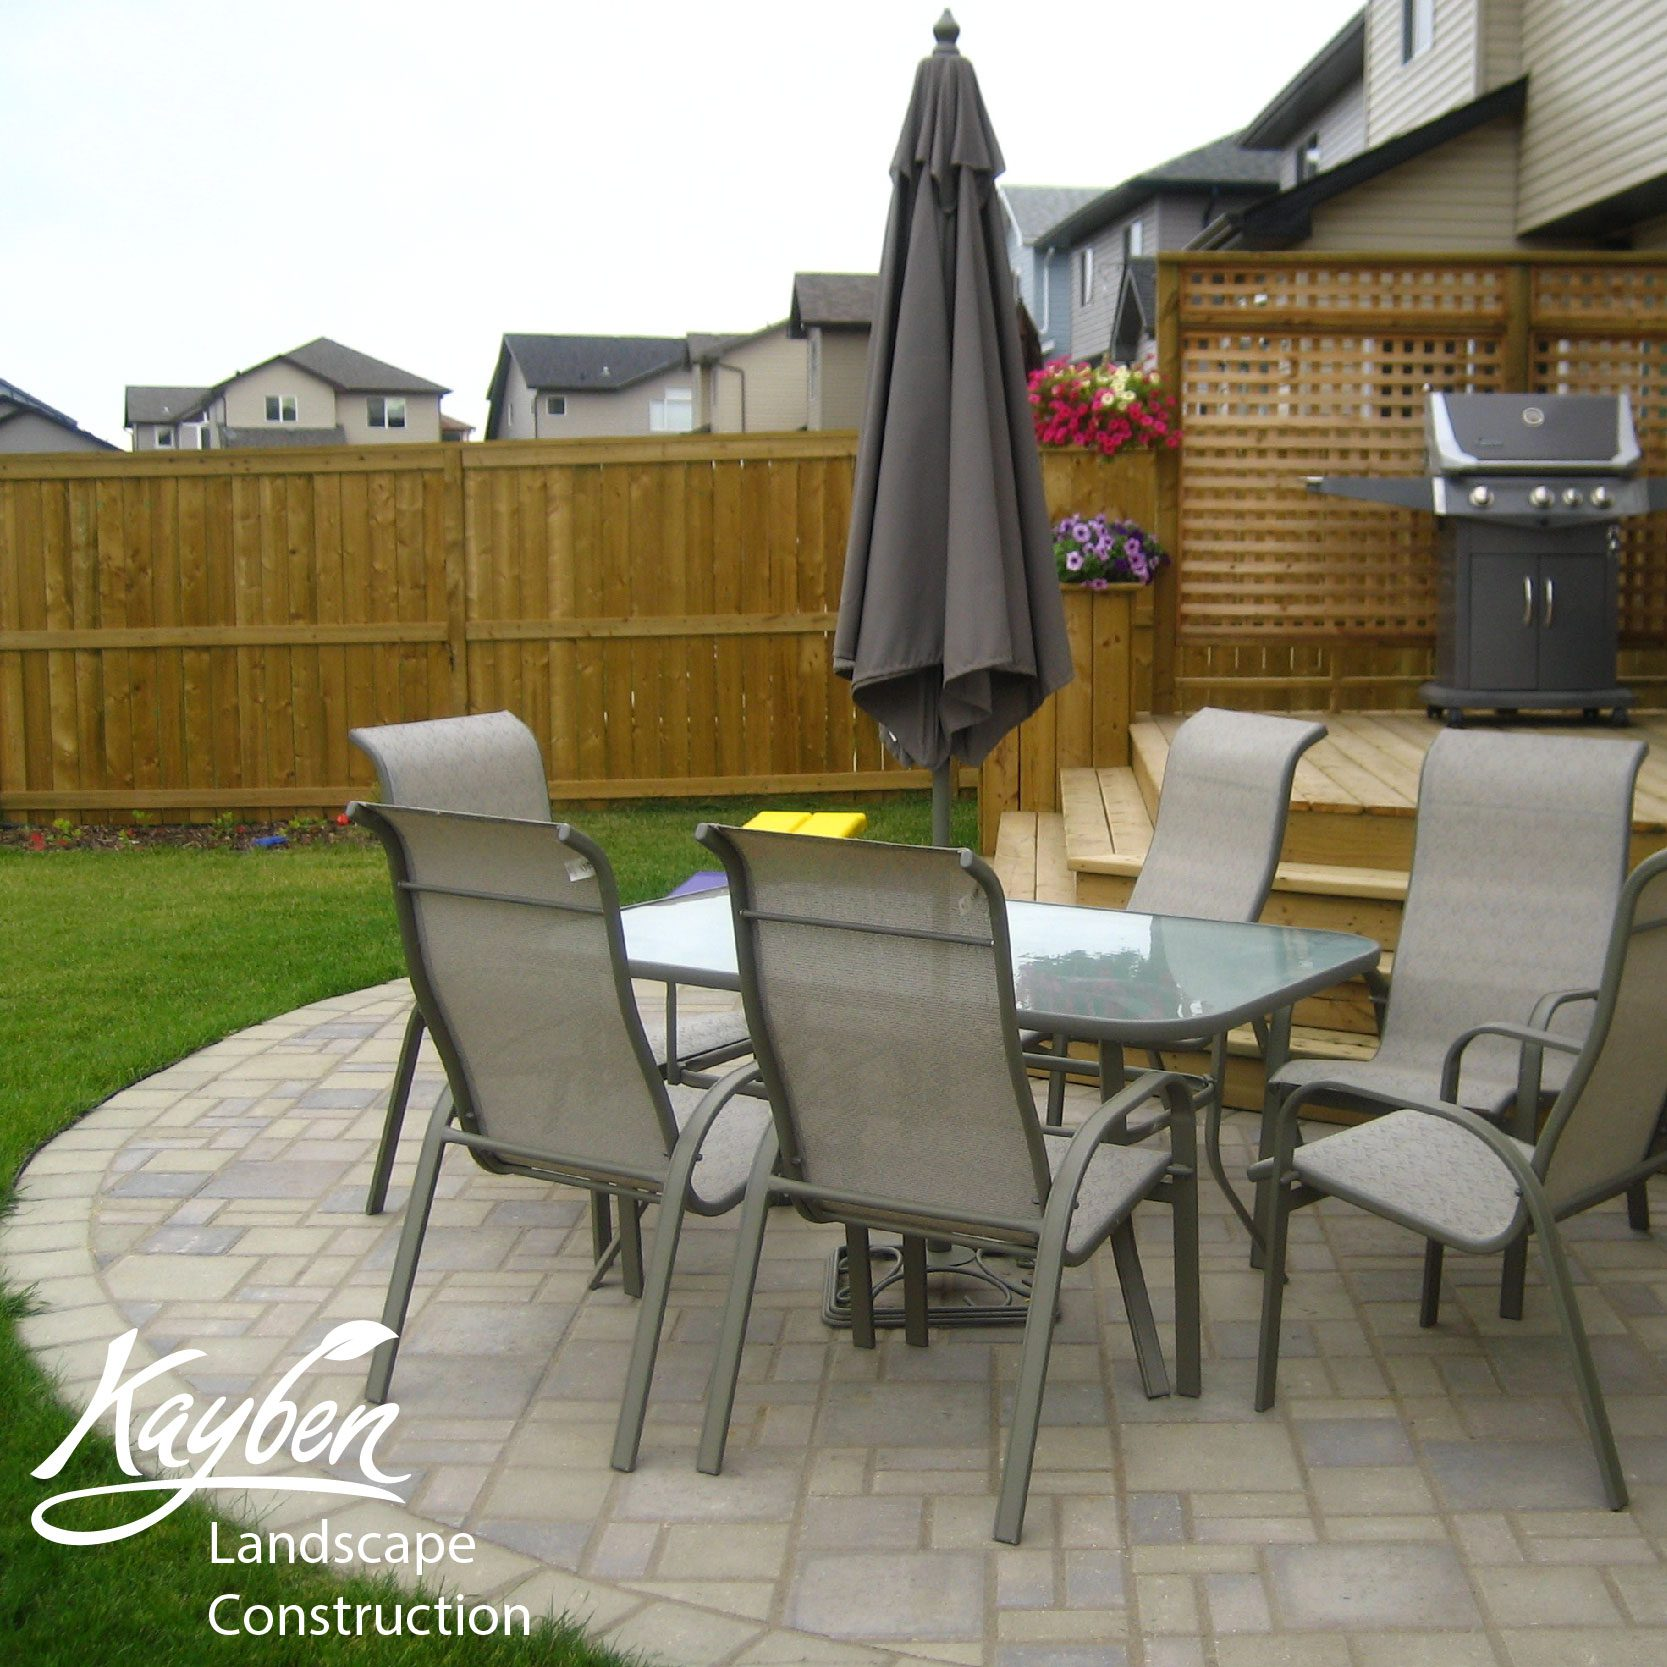 holland pavers seating area-01